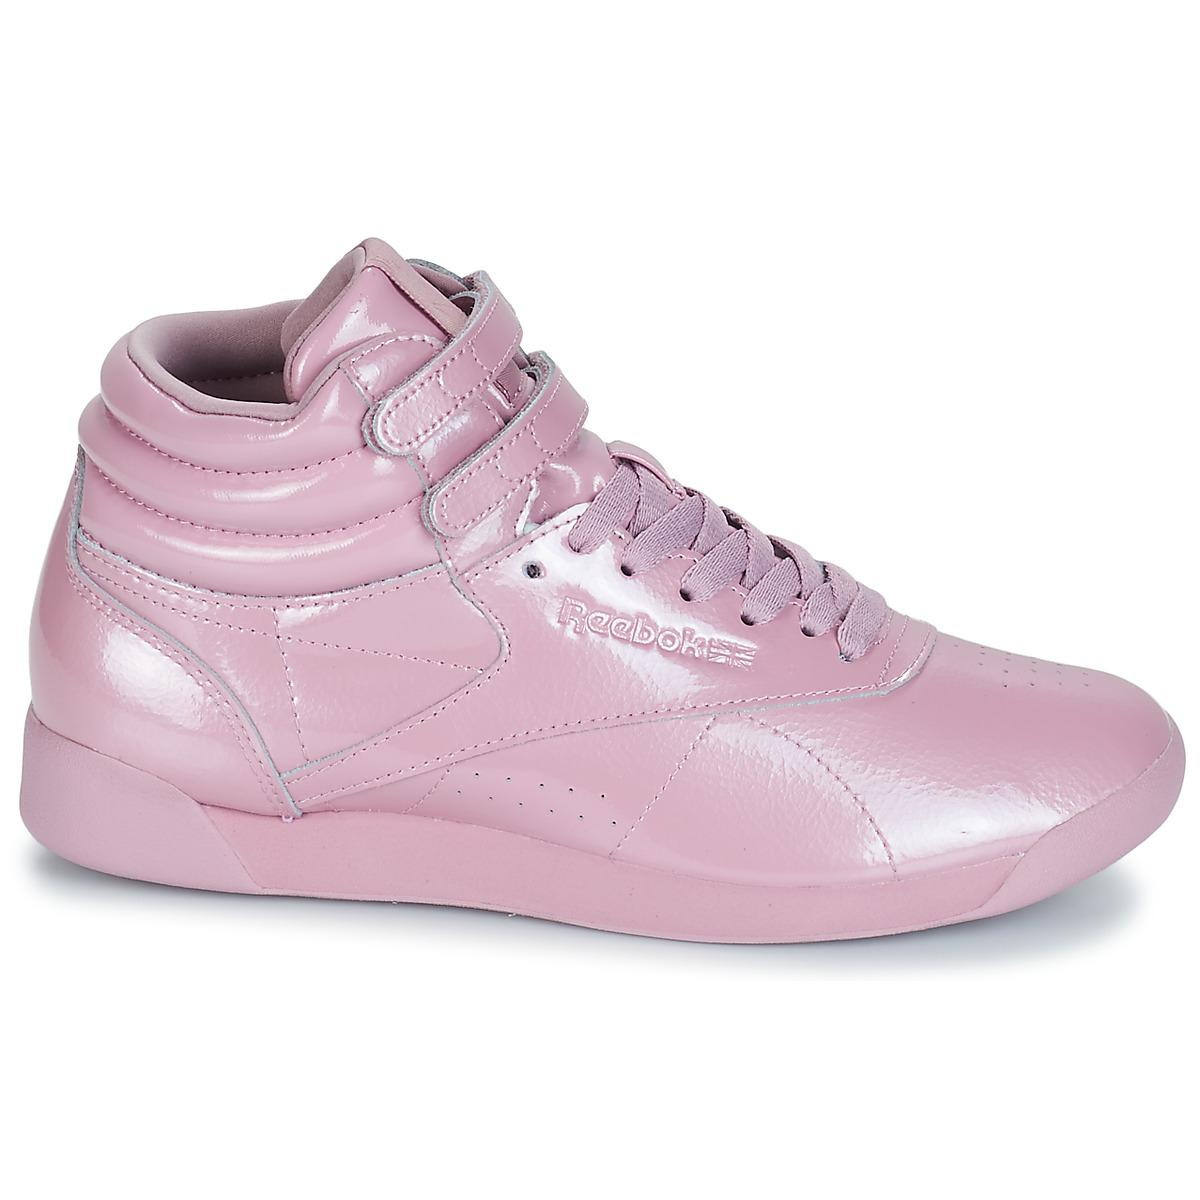 92c596b13102 Reebok - Freestyle Hi Women s Shoes (high-top Trainers) In Purple - Lyst.  View fullscreen